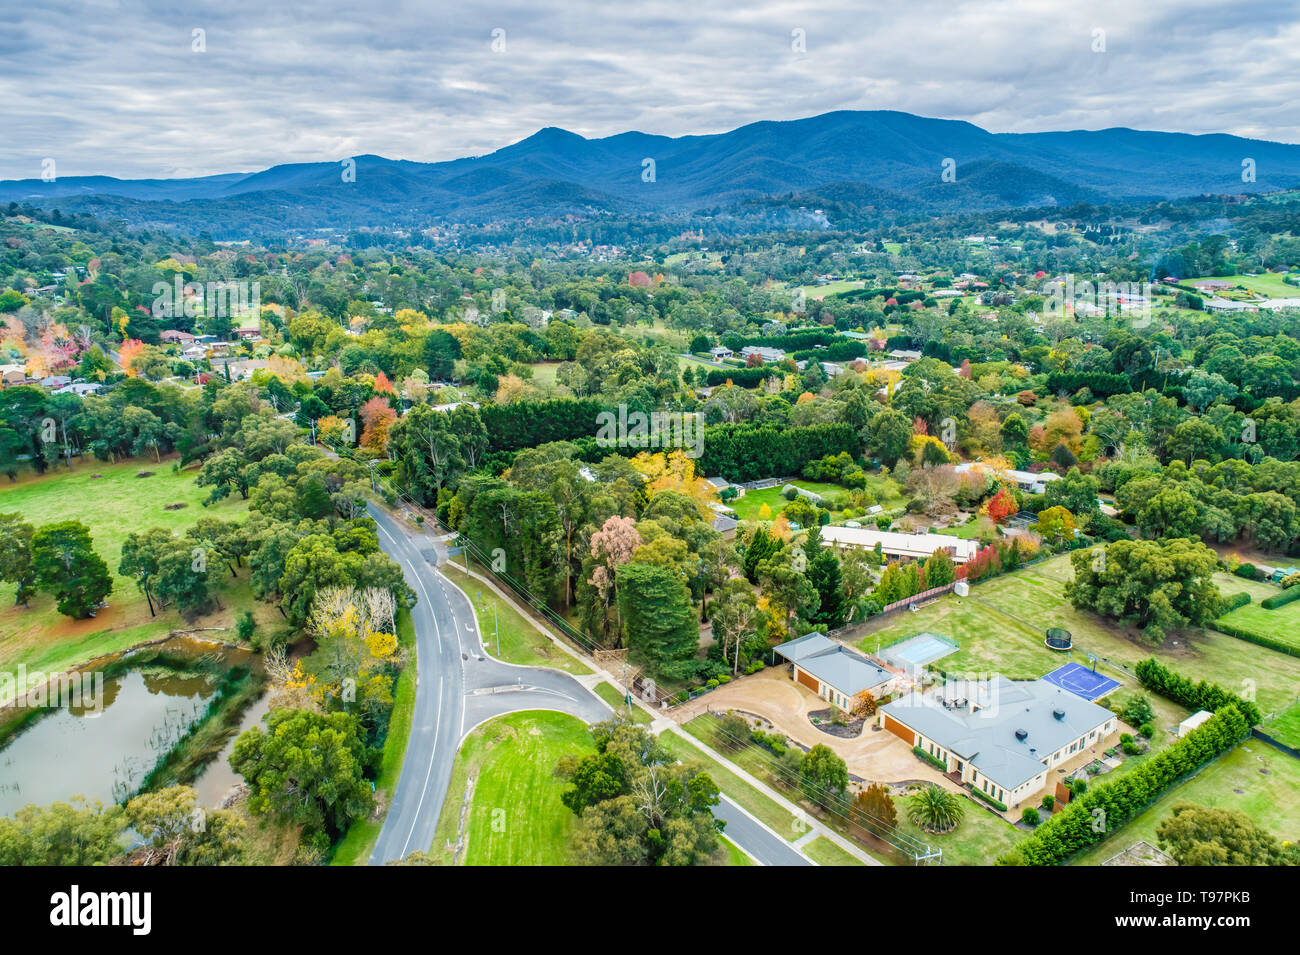 Aerial landscape of rural houses among trees in fall. Healesville, Victoria, Australia - Stock Image